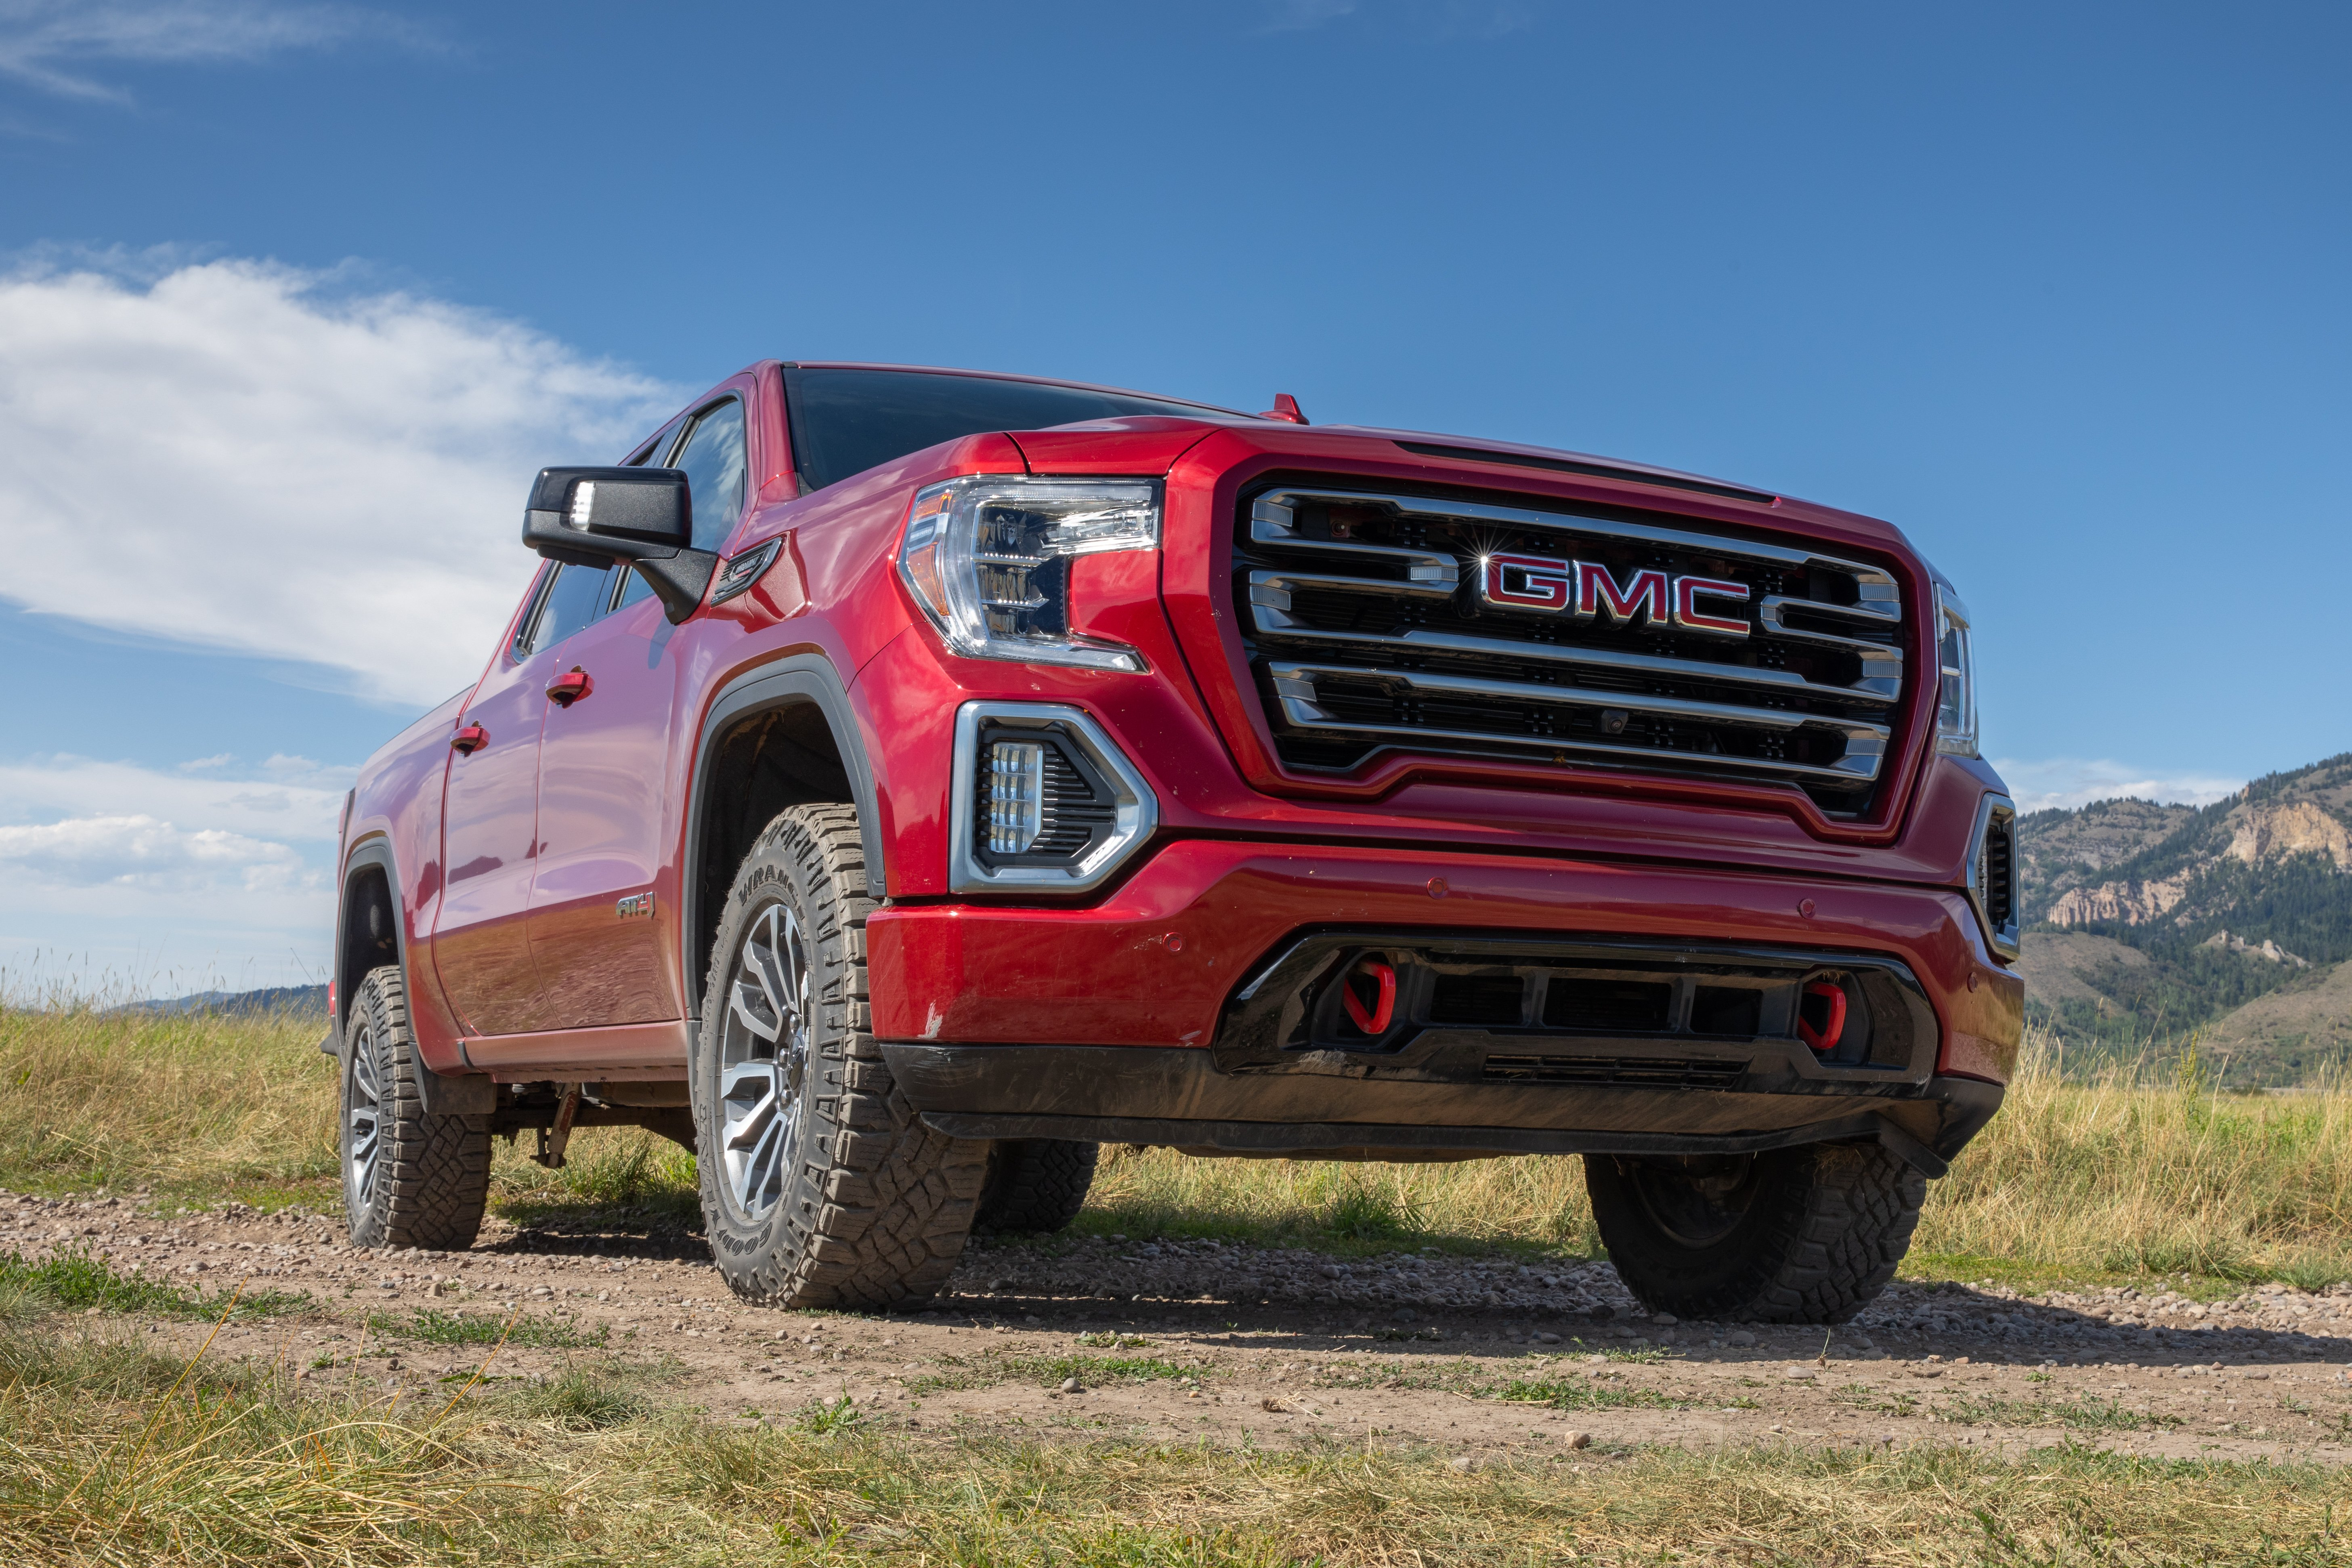 Fastest 50: New Mexico's Race-Ready RAM From Monarch Diesel